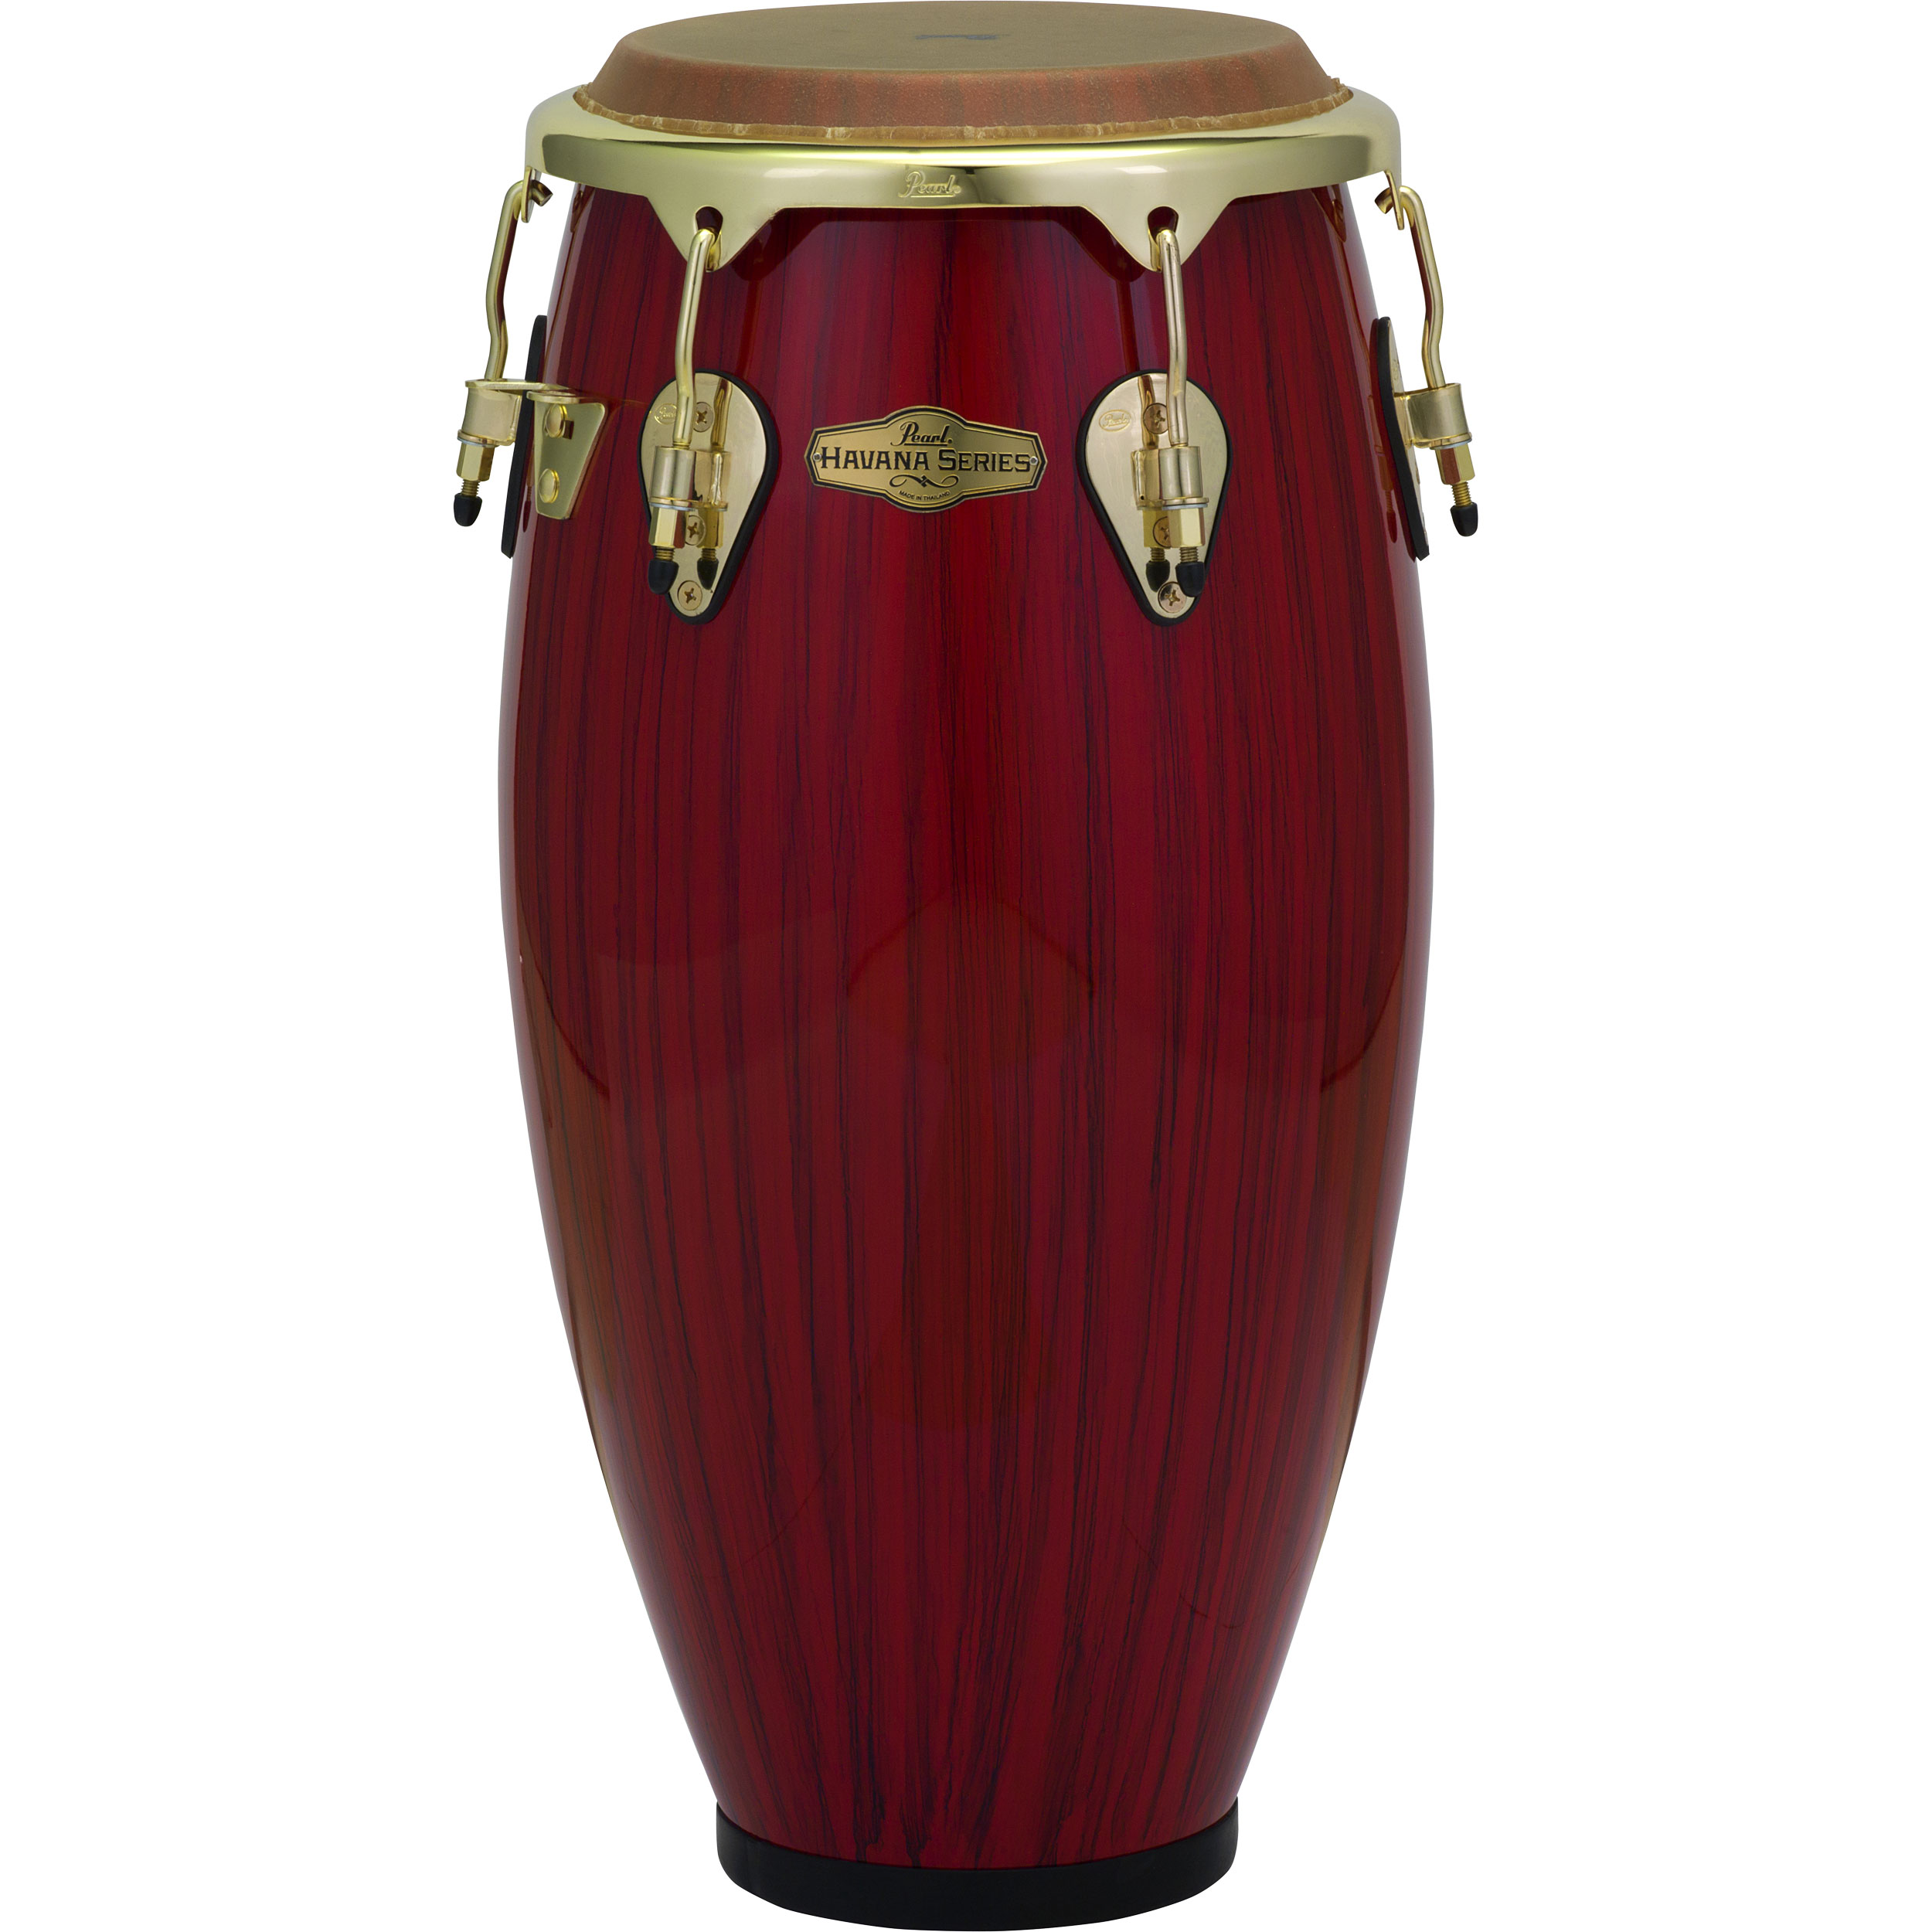 "Pearl 12.5"" Havana Series Fiberglass Tumba Conga in Red Tiger Stripe with Gold Hardware"